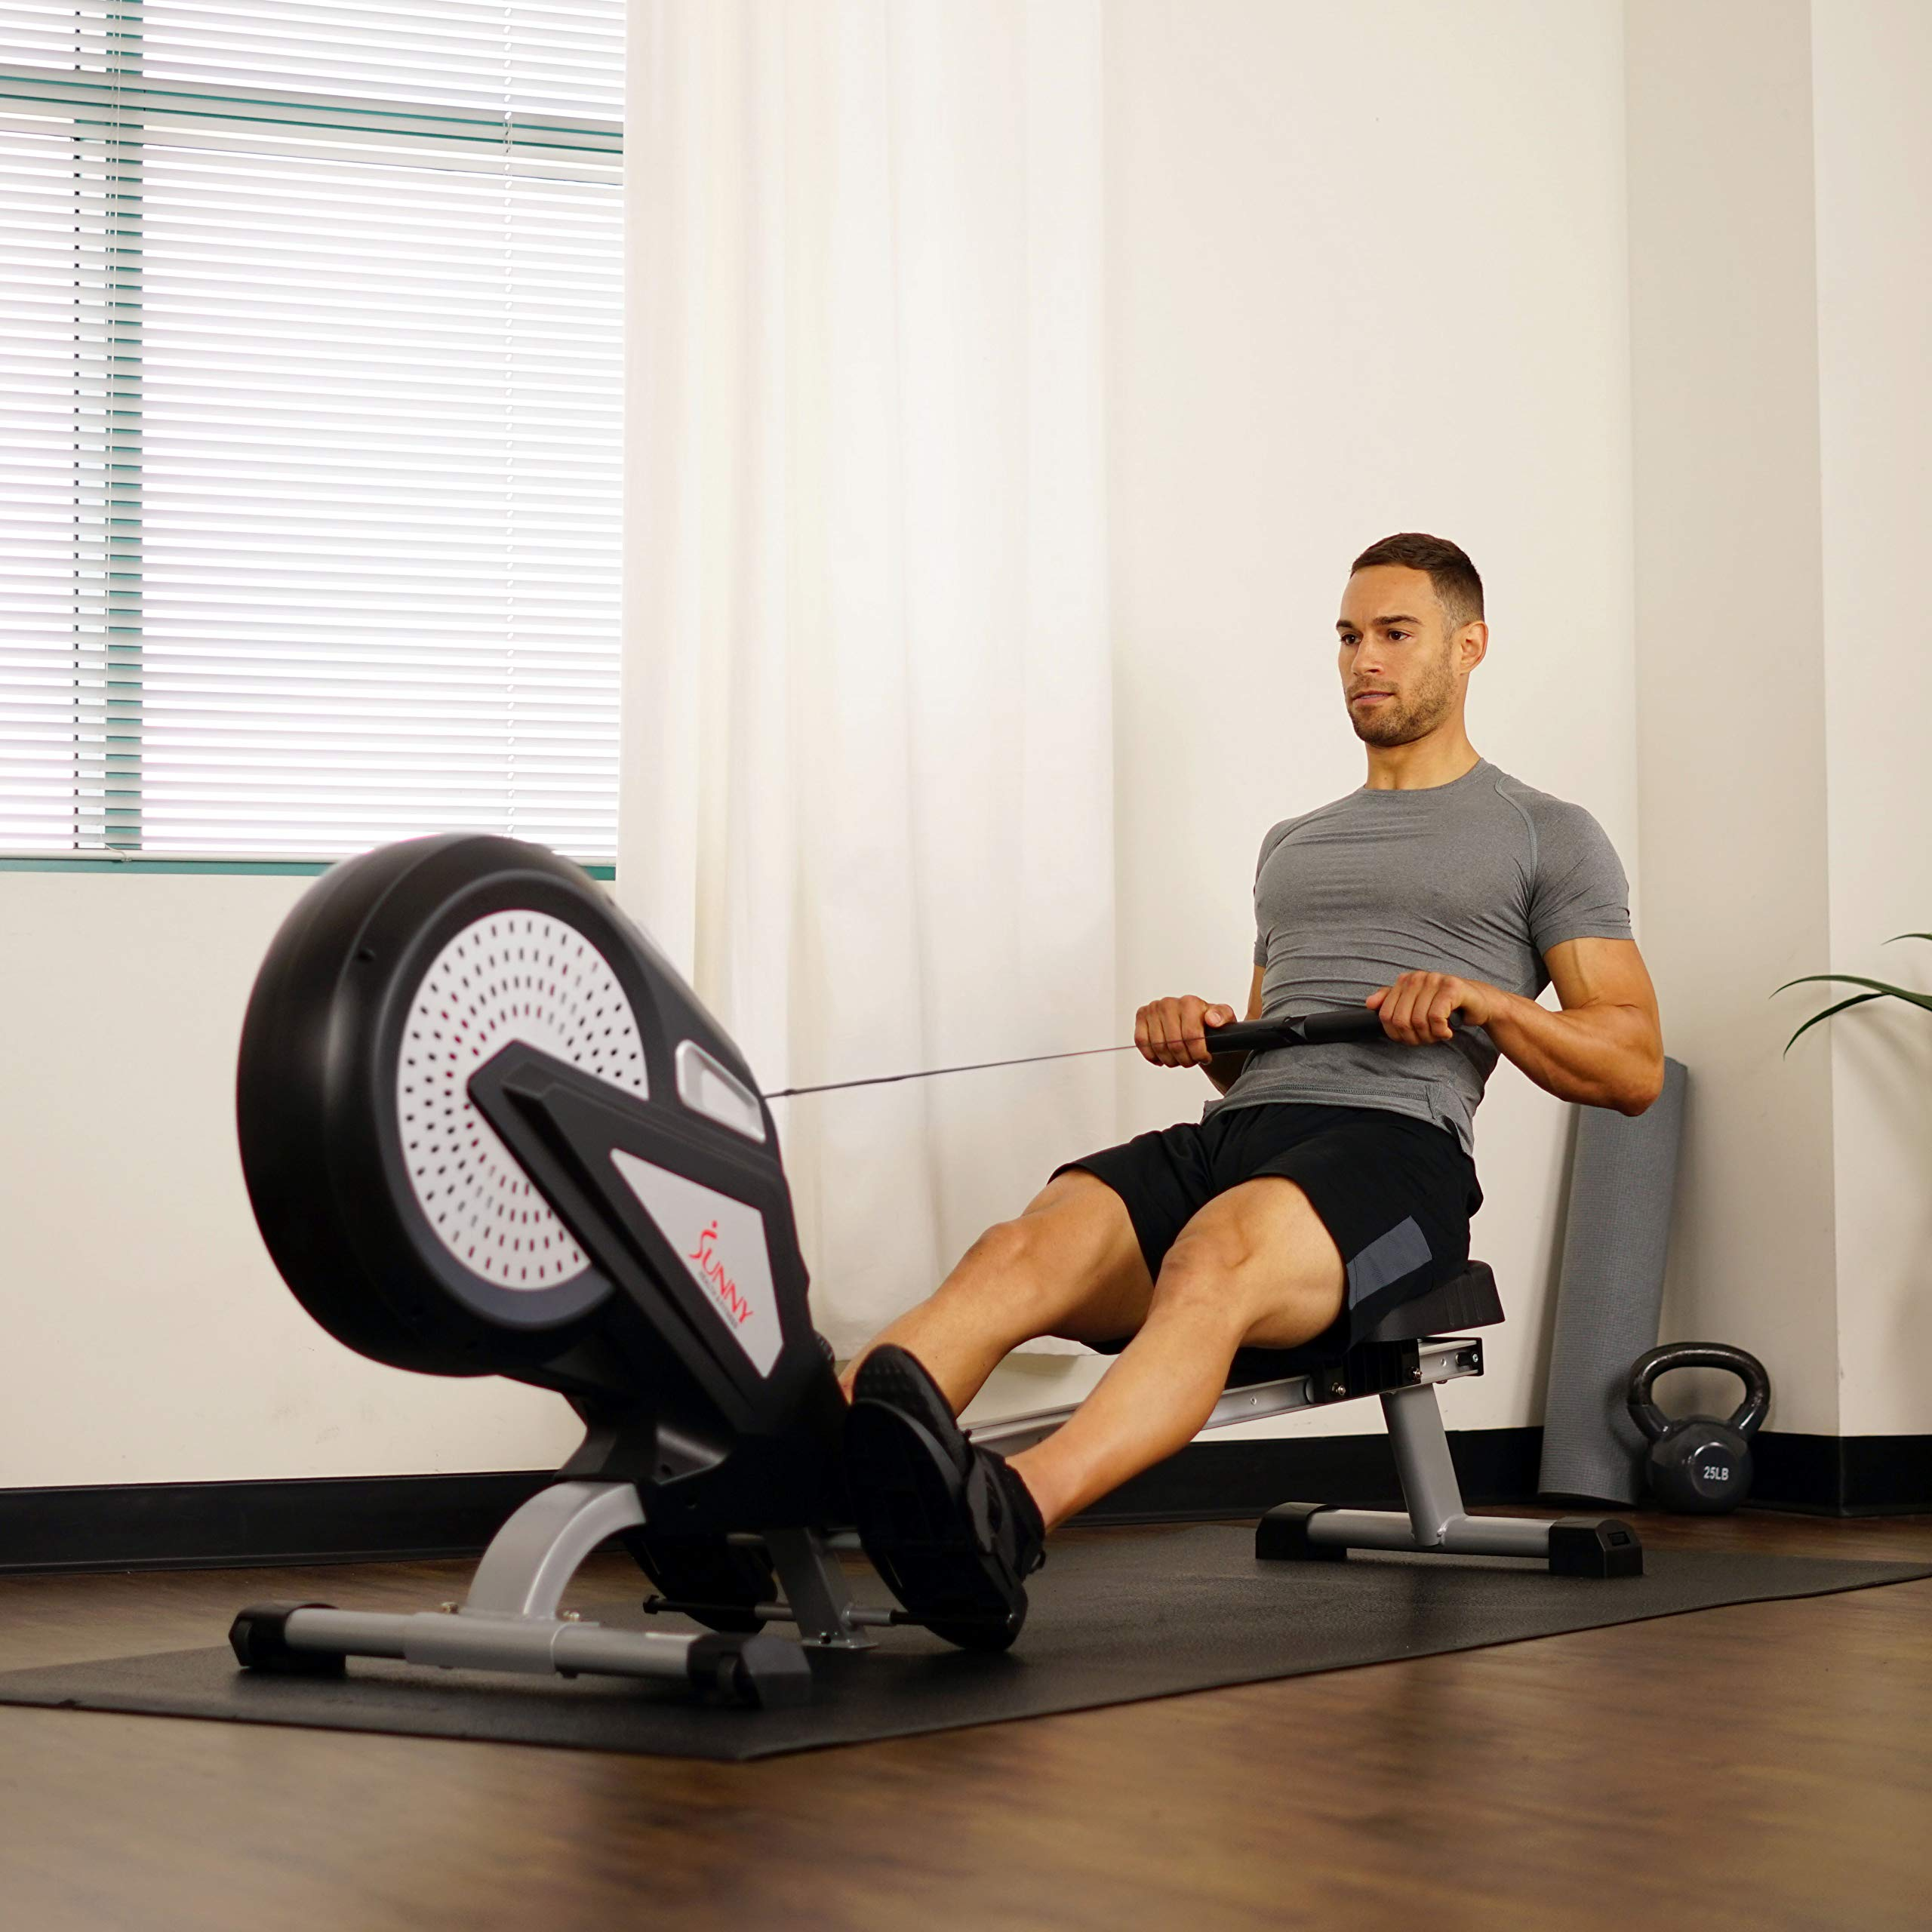 Sunny Health & Fitness Air Rower Rowing Machine w/ LCD Monitor, Dual Belt and Air Resistance SF-RW5623 by Sunny Health & Fitness (Image #11)